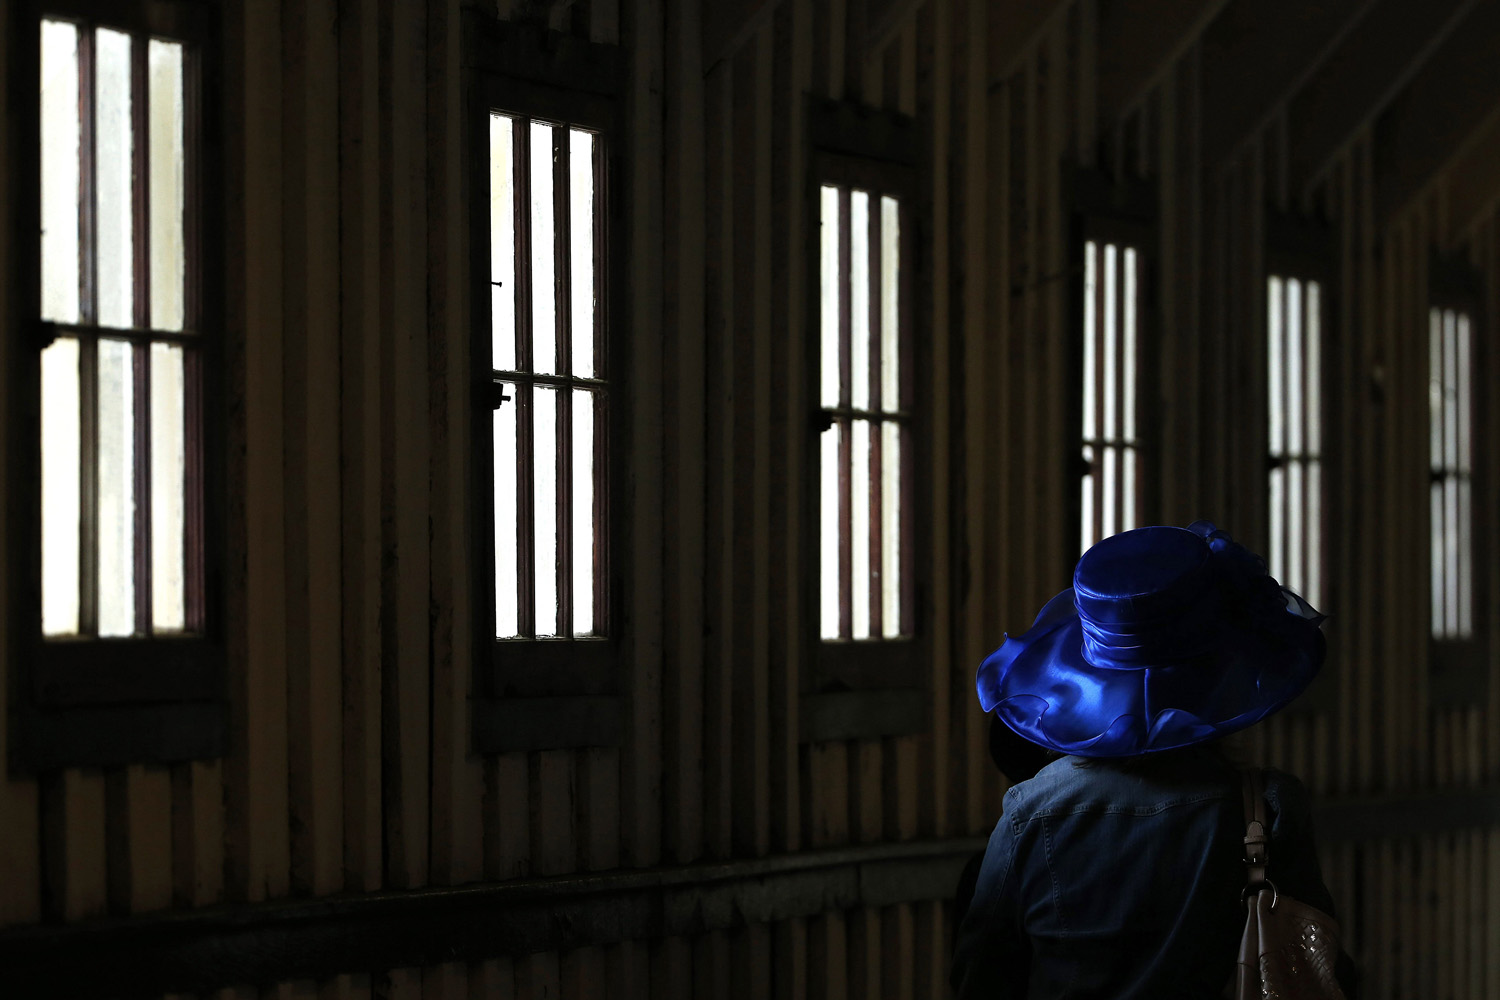 May 17, 2014. A racing fan heads to the track before the 139th Preakness Stakes horse race at Pimlico Race Course in Baltimore.